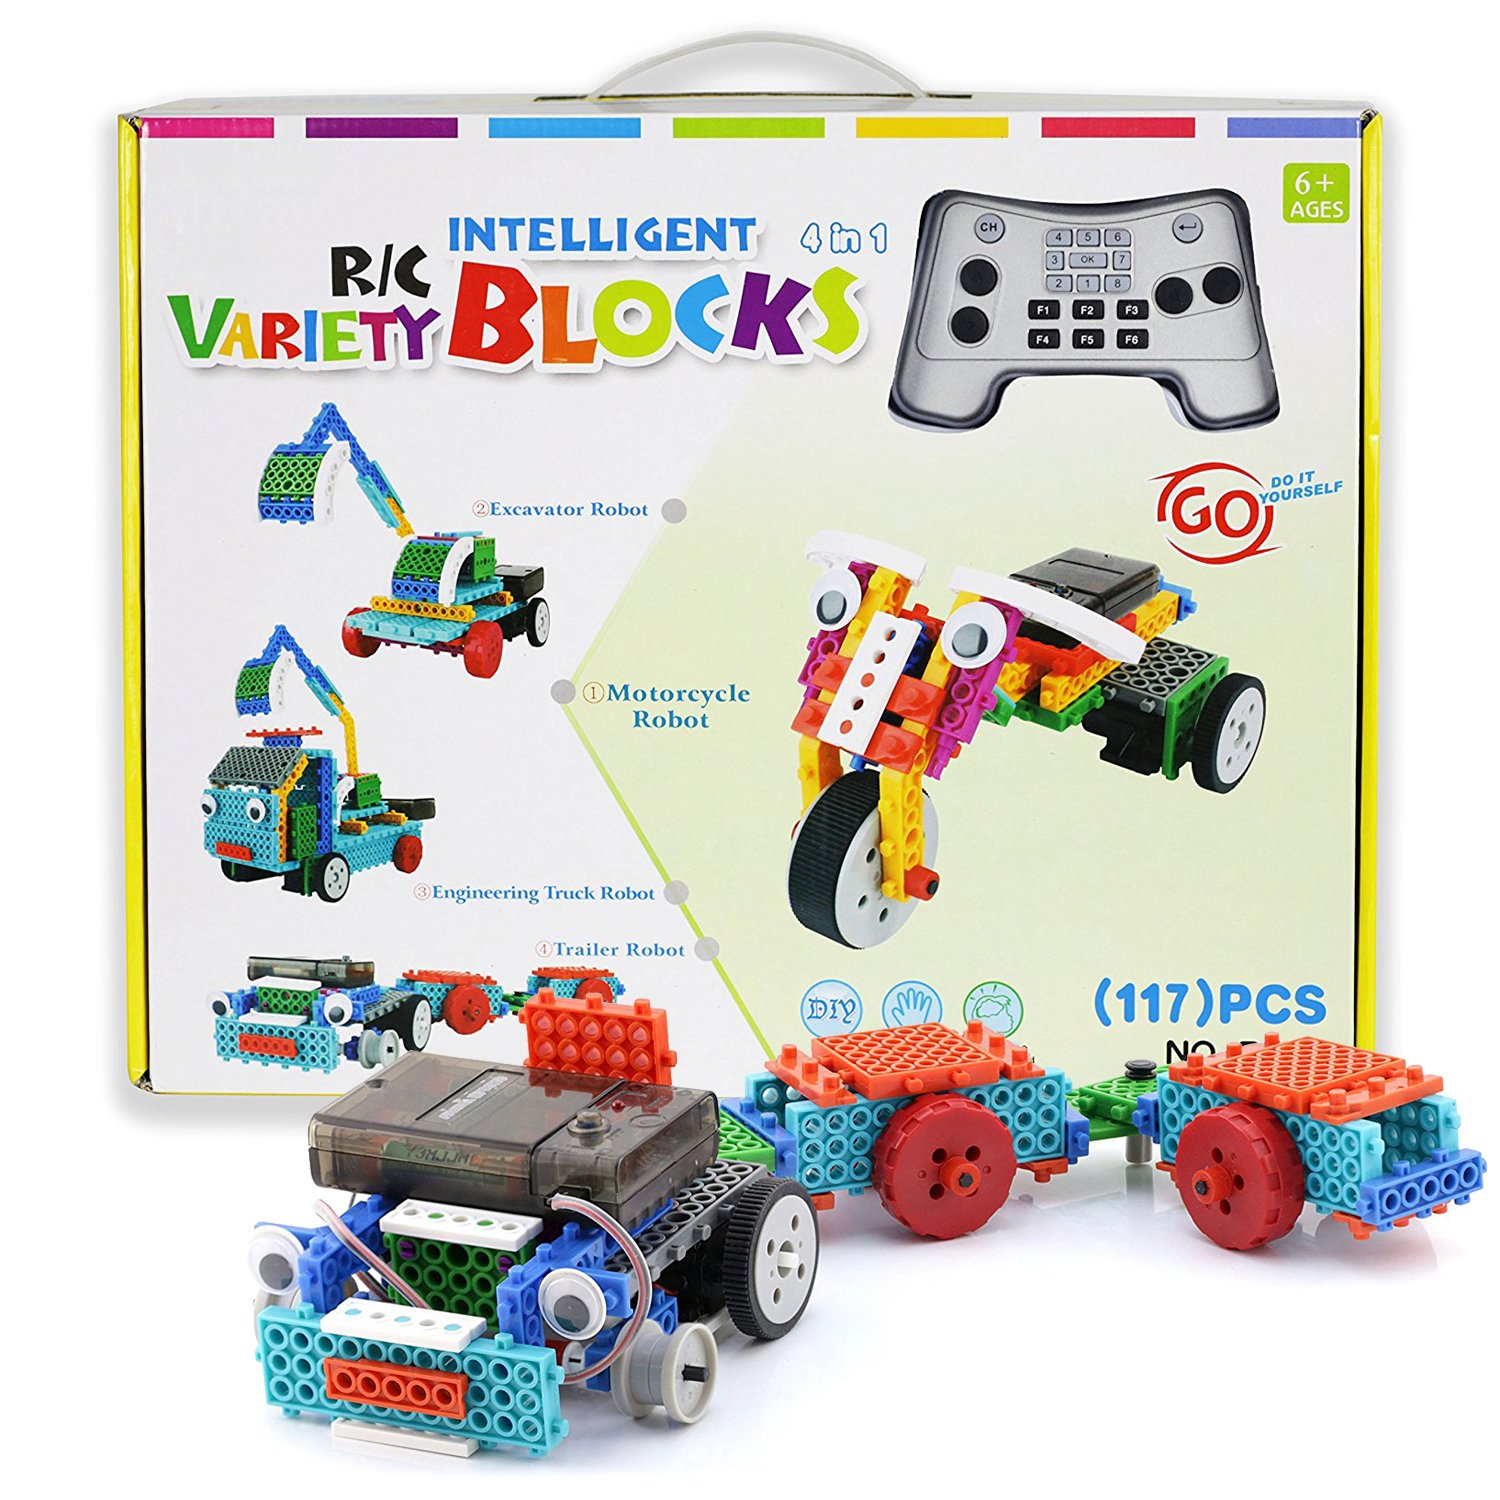 Building Kits for Kids, PACKGOUT Remote Control RC Construction Toys Gifts for Boys Girls Kids, Building Blocks Build Robot Kit for Kids Your Own Remote Control Car (127PCS)